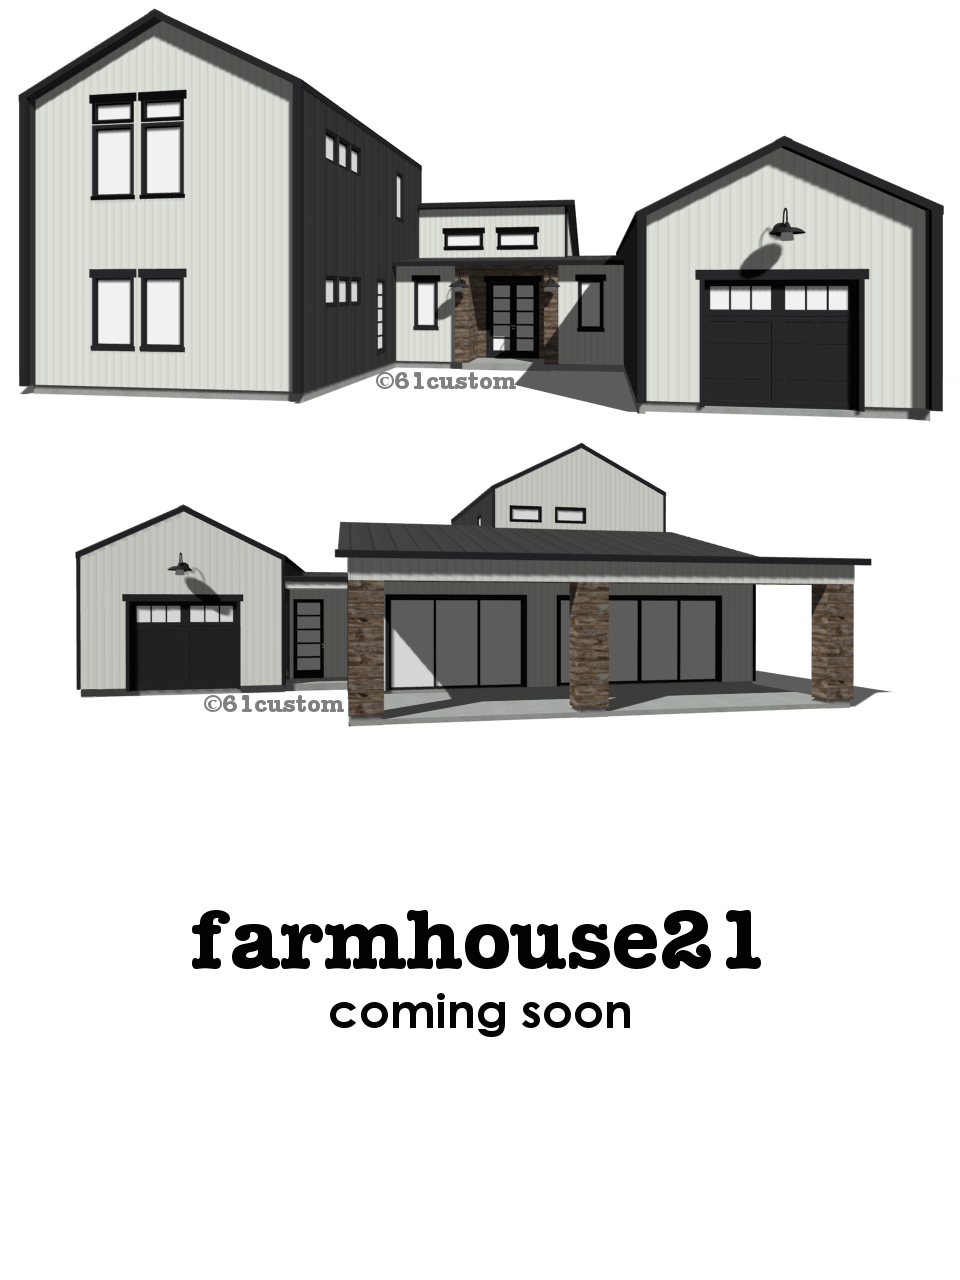 Farmhouse21 Modern House Plan 61custom Contemporary